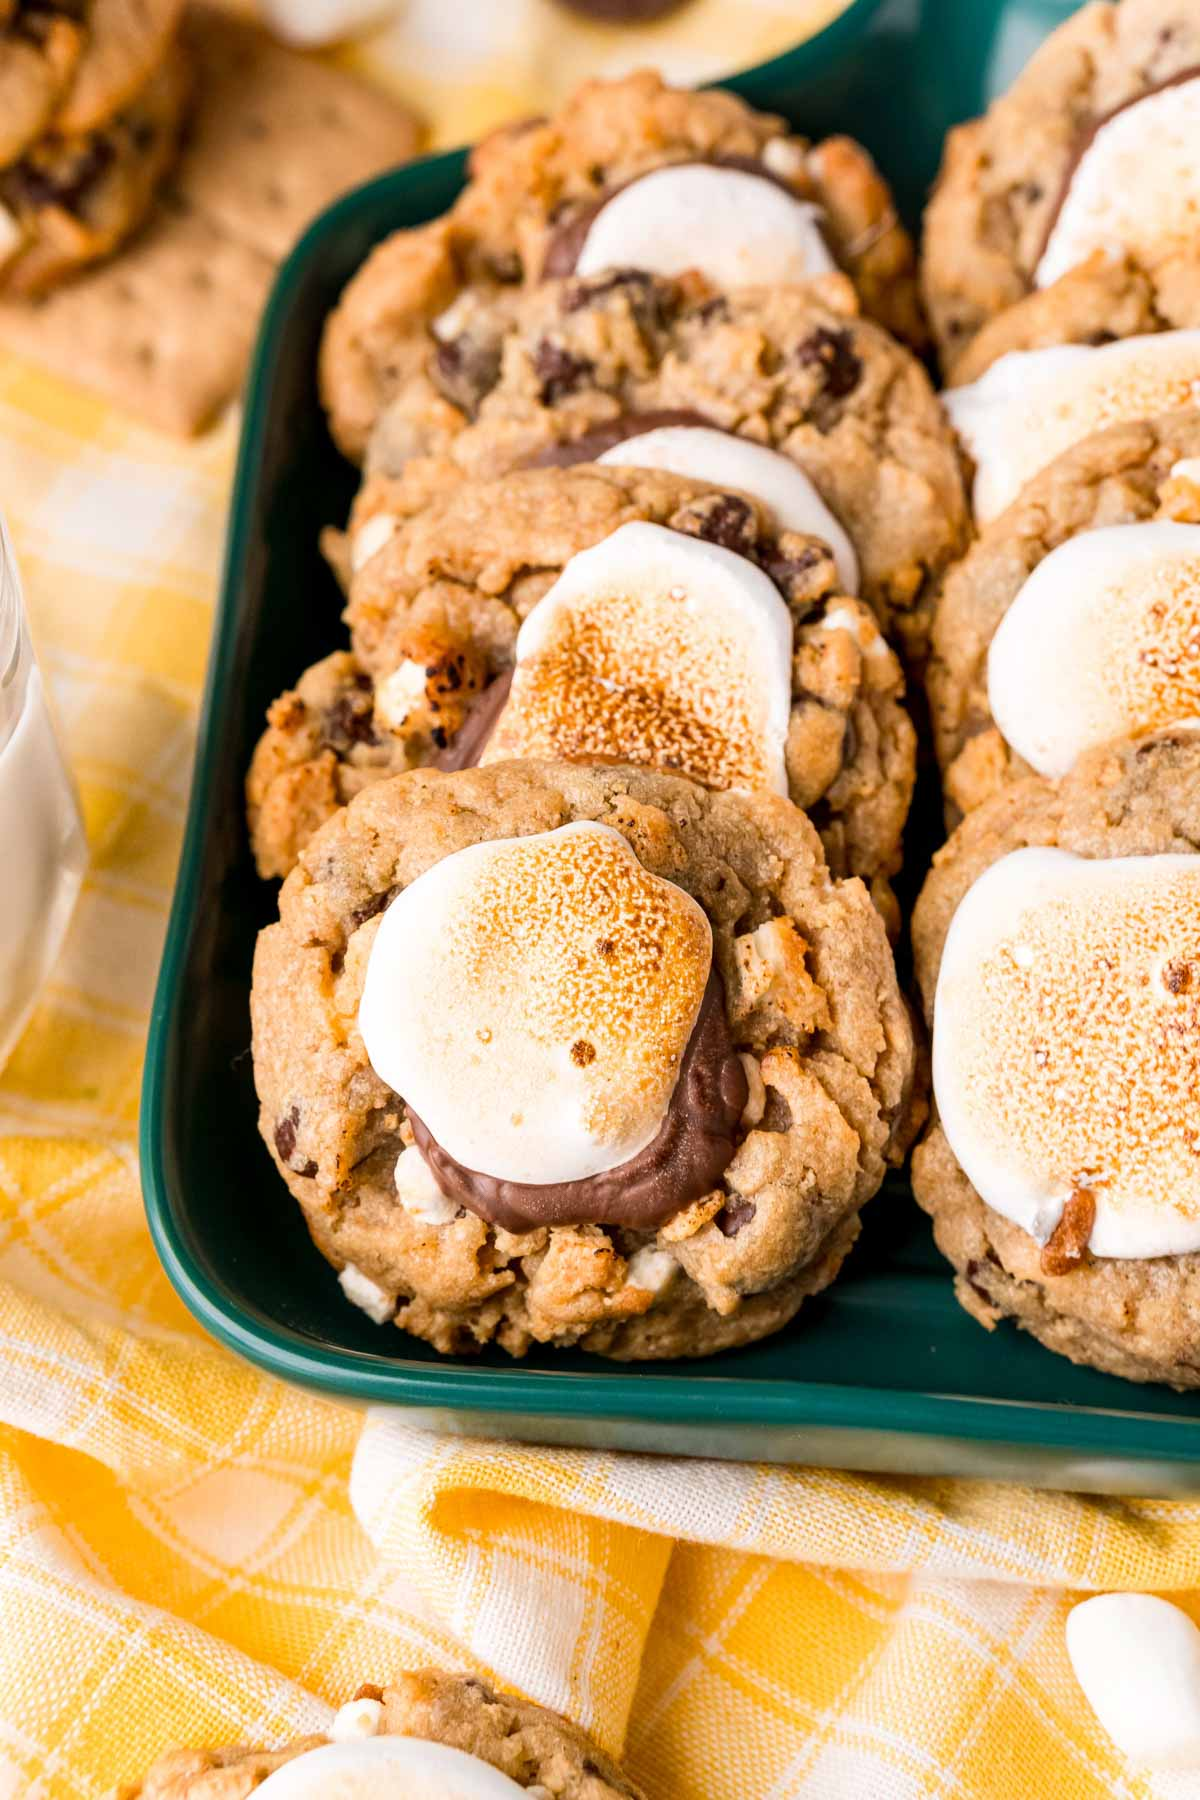 green tray filled with s'mores cookies